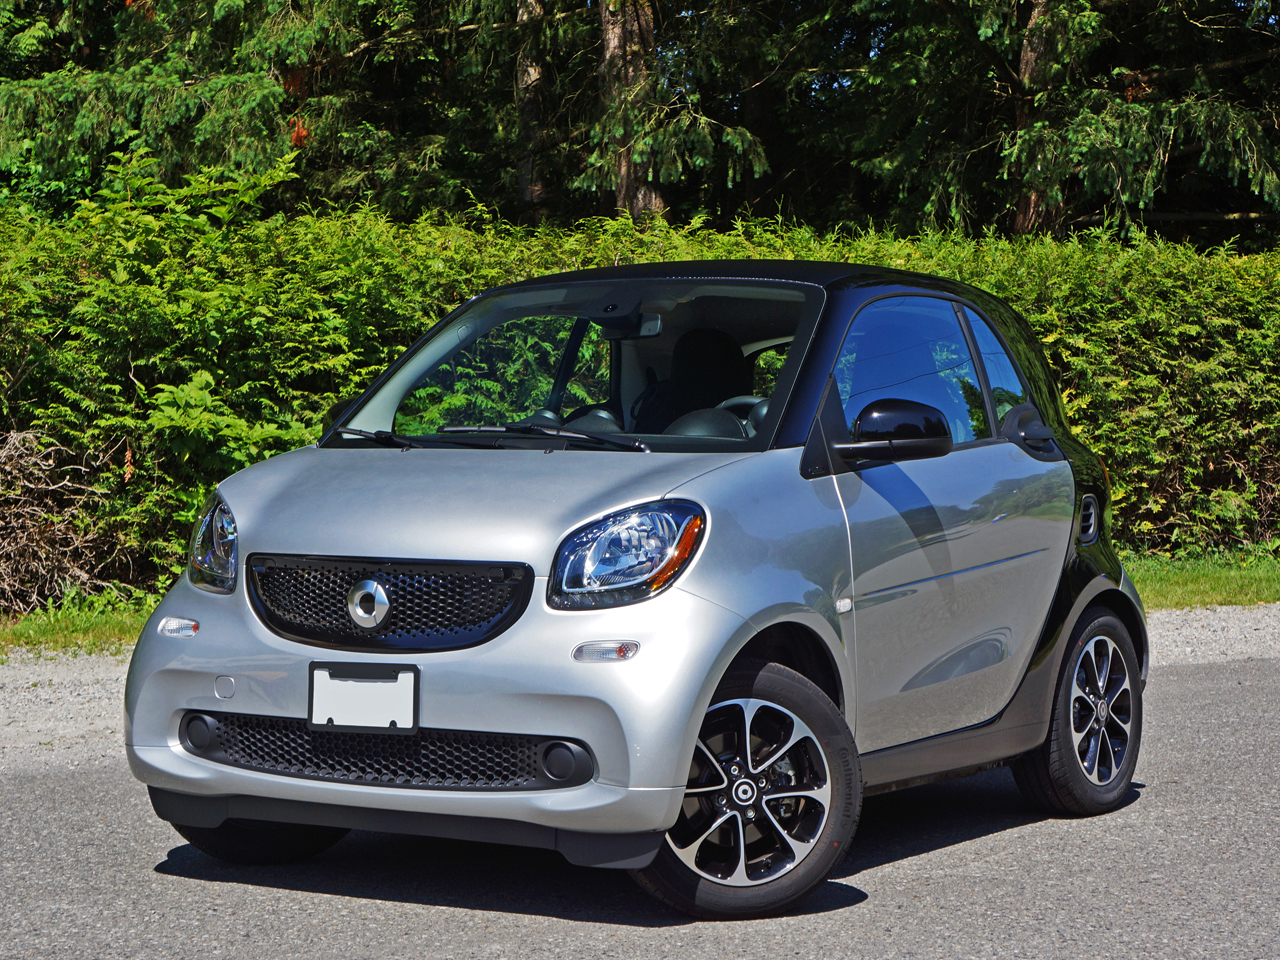 2016 Smart Fortwo Coupe Pion Twinamic Dct Road Test Review Carcostcanada